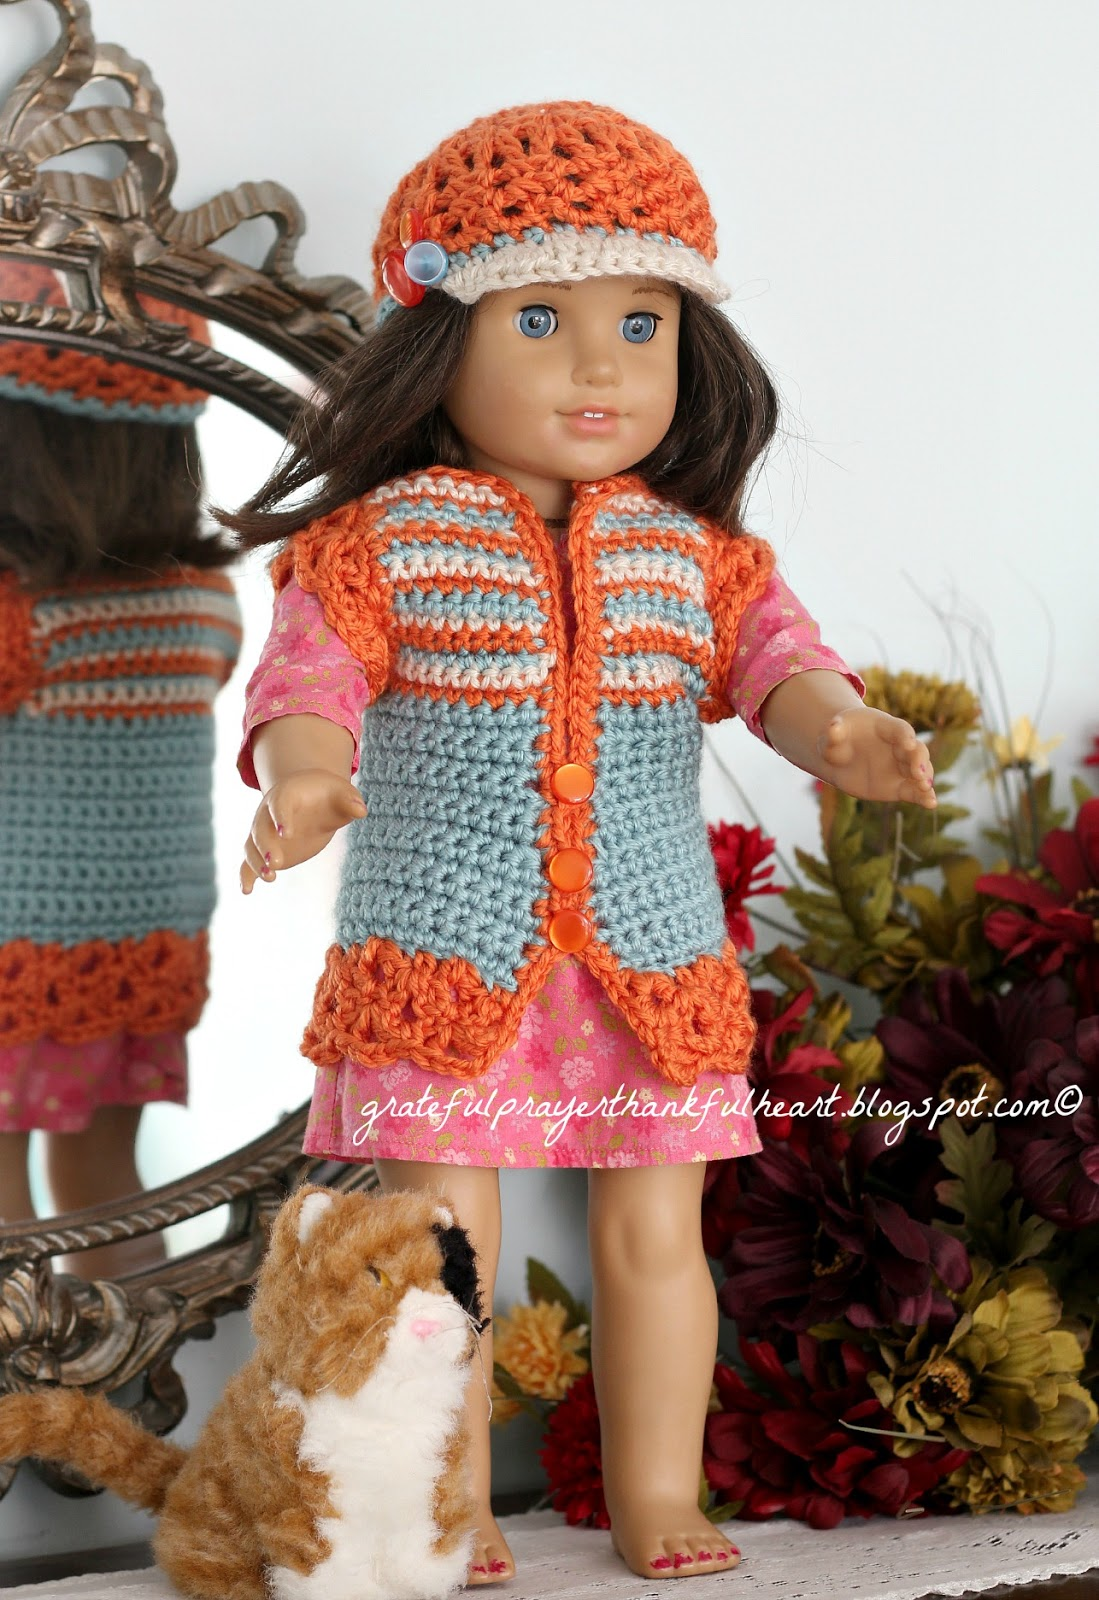 American Girl Crochet Pattern for dolls | Grateful Prayer | Thankful ...